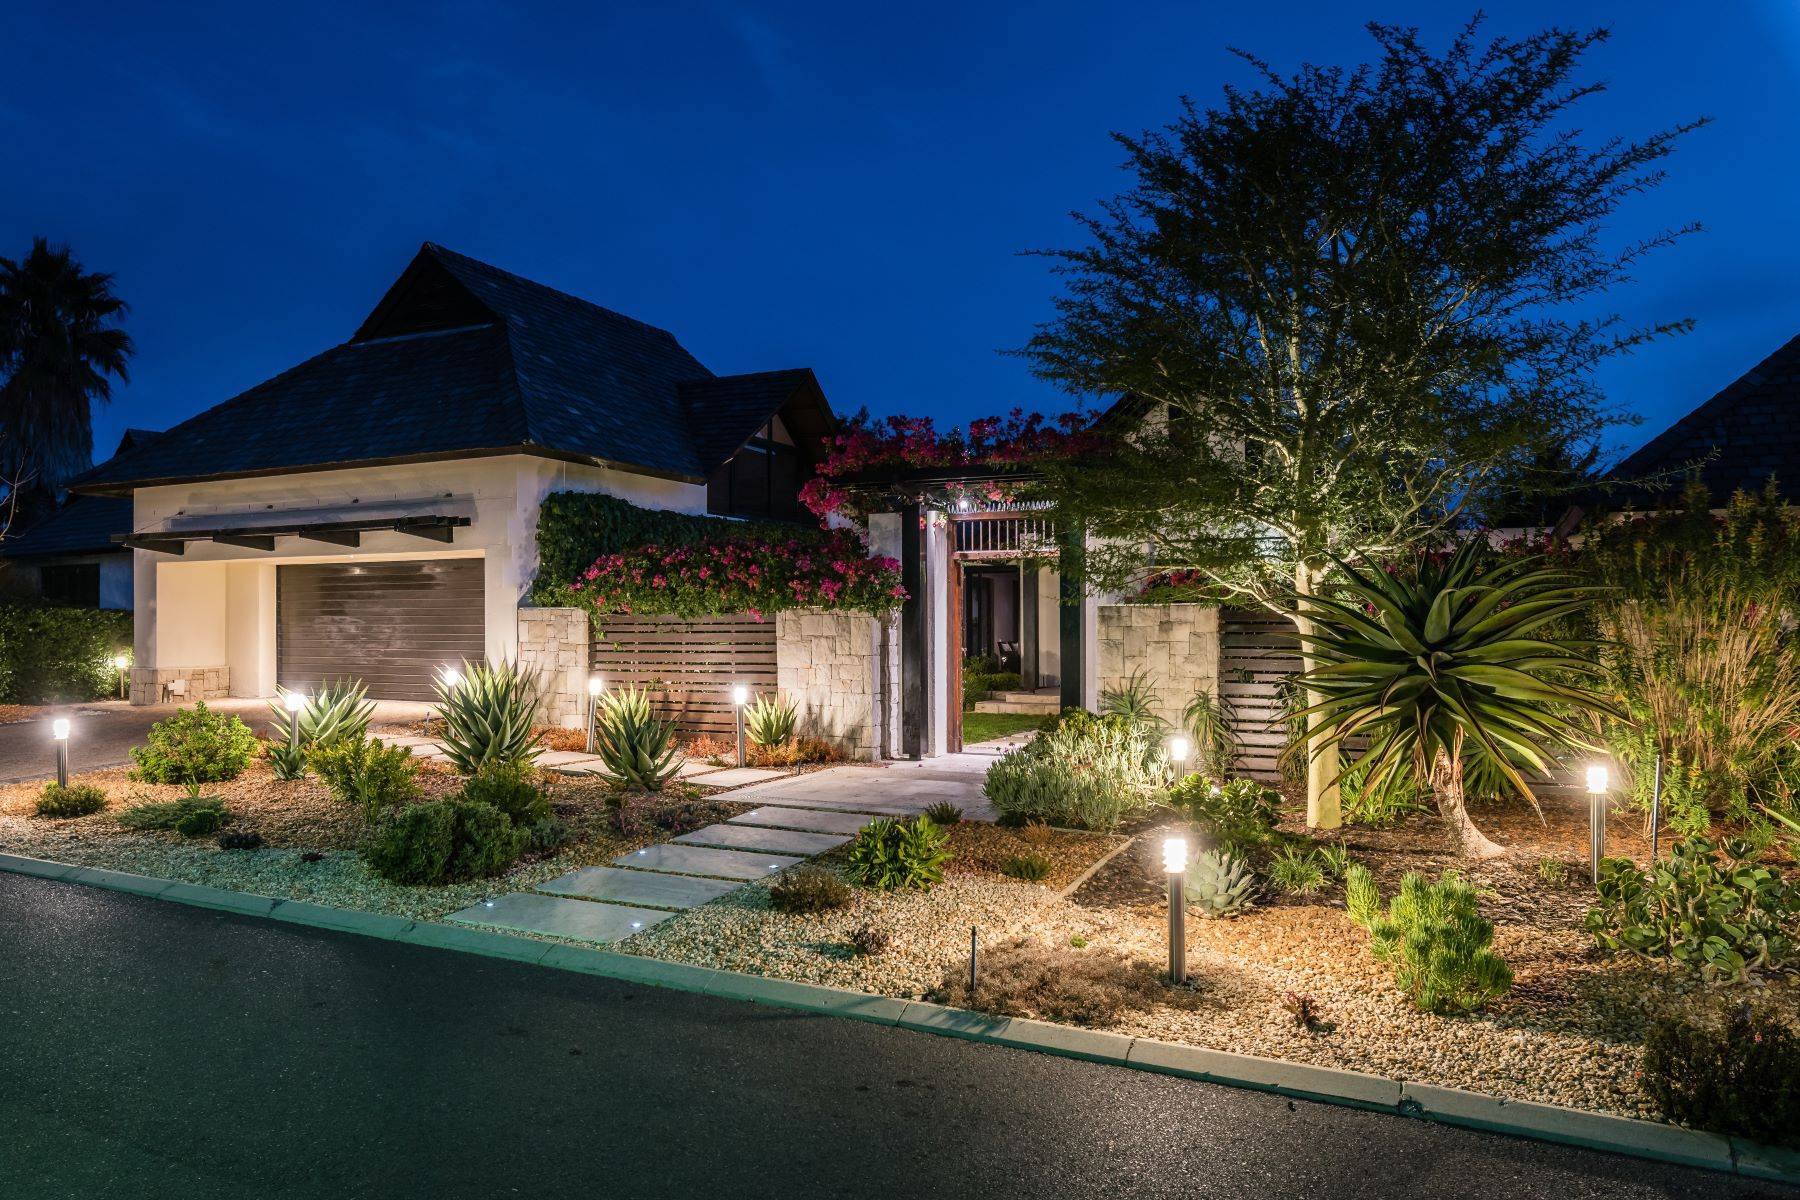 Single Family Home for Sale at Pearl Valley at Val de Vie Estate Franschhoek, Western Cape, 7646 South Africa